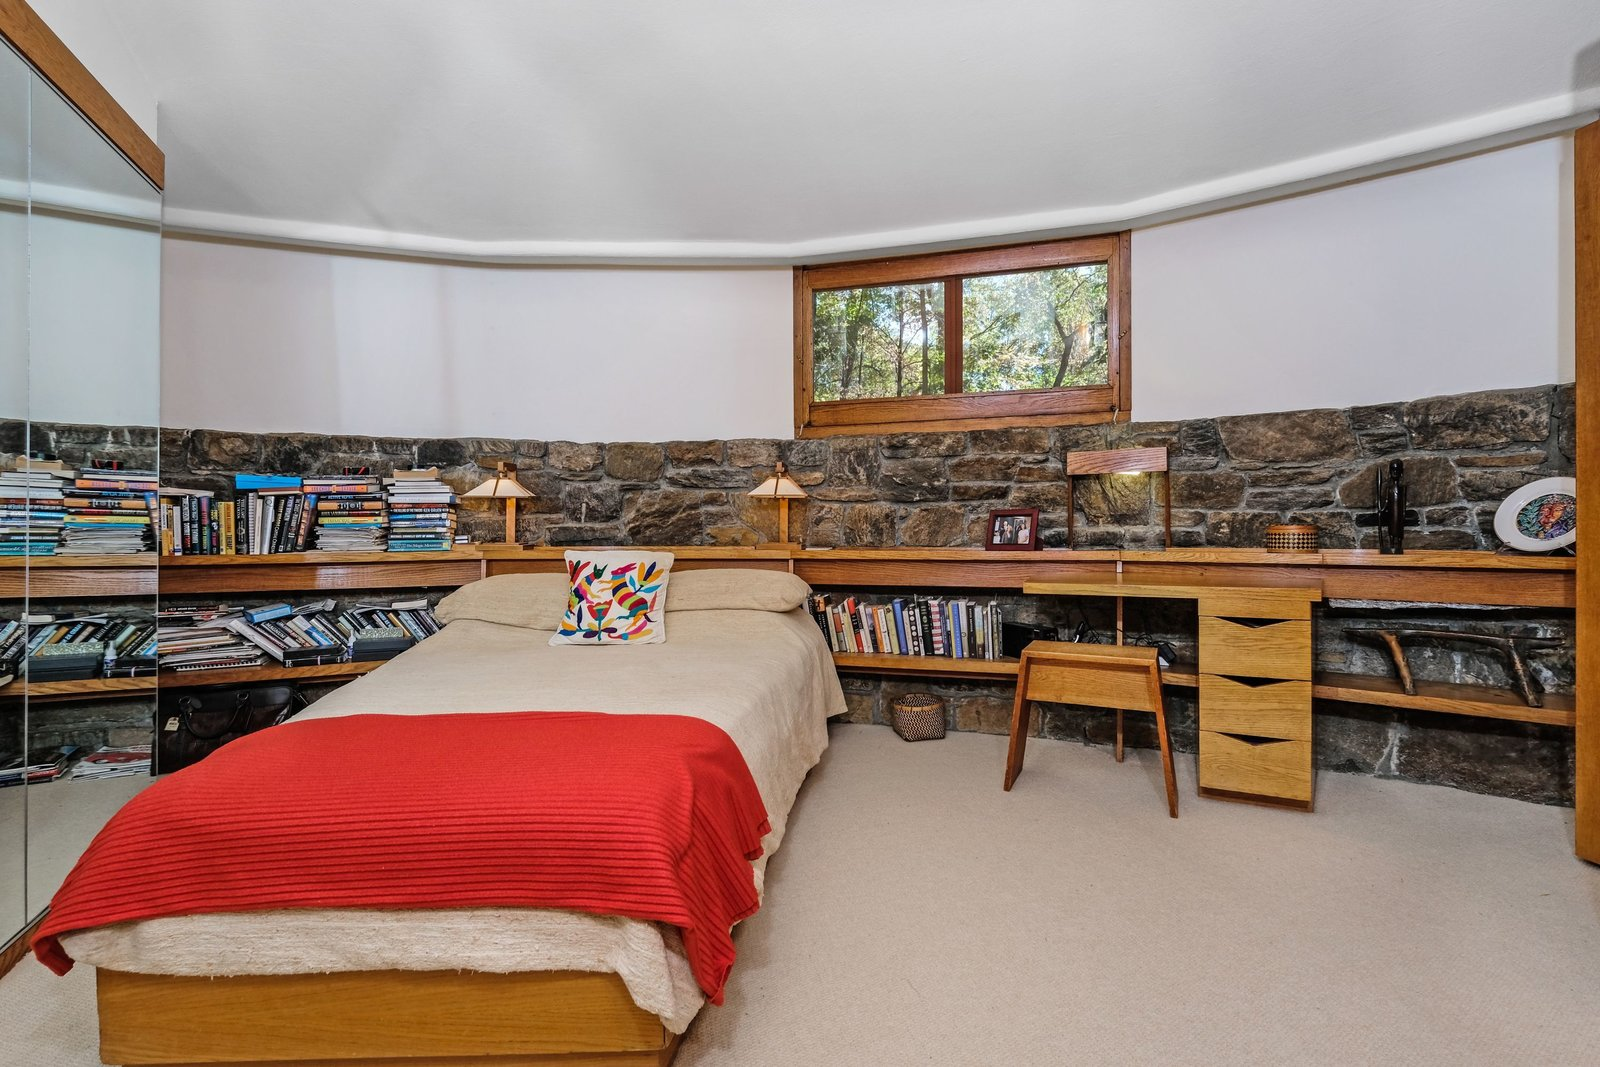 Bedroom, Bed, Shelves, Storage, Table, Bookcase, Bench, and Night Stands  Best Bedroom Bench Shelves Bookcase Night Stands Table Storage Photos from A Usonian Masterpiece by Frank Lloyd Wright Is on the Market For $1.5M